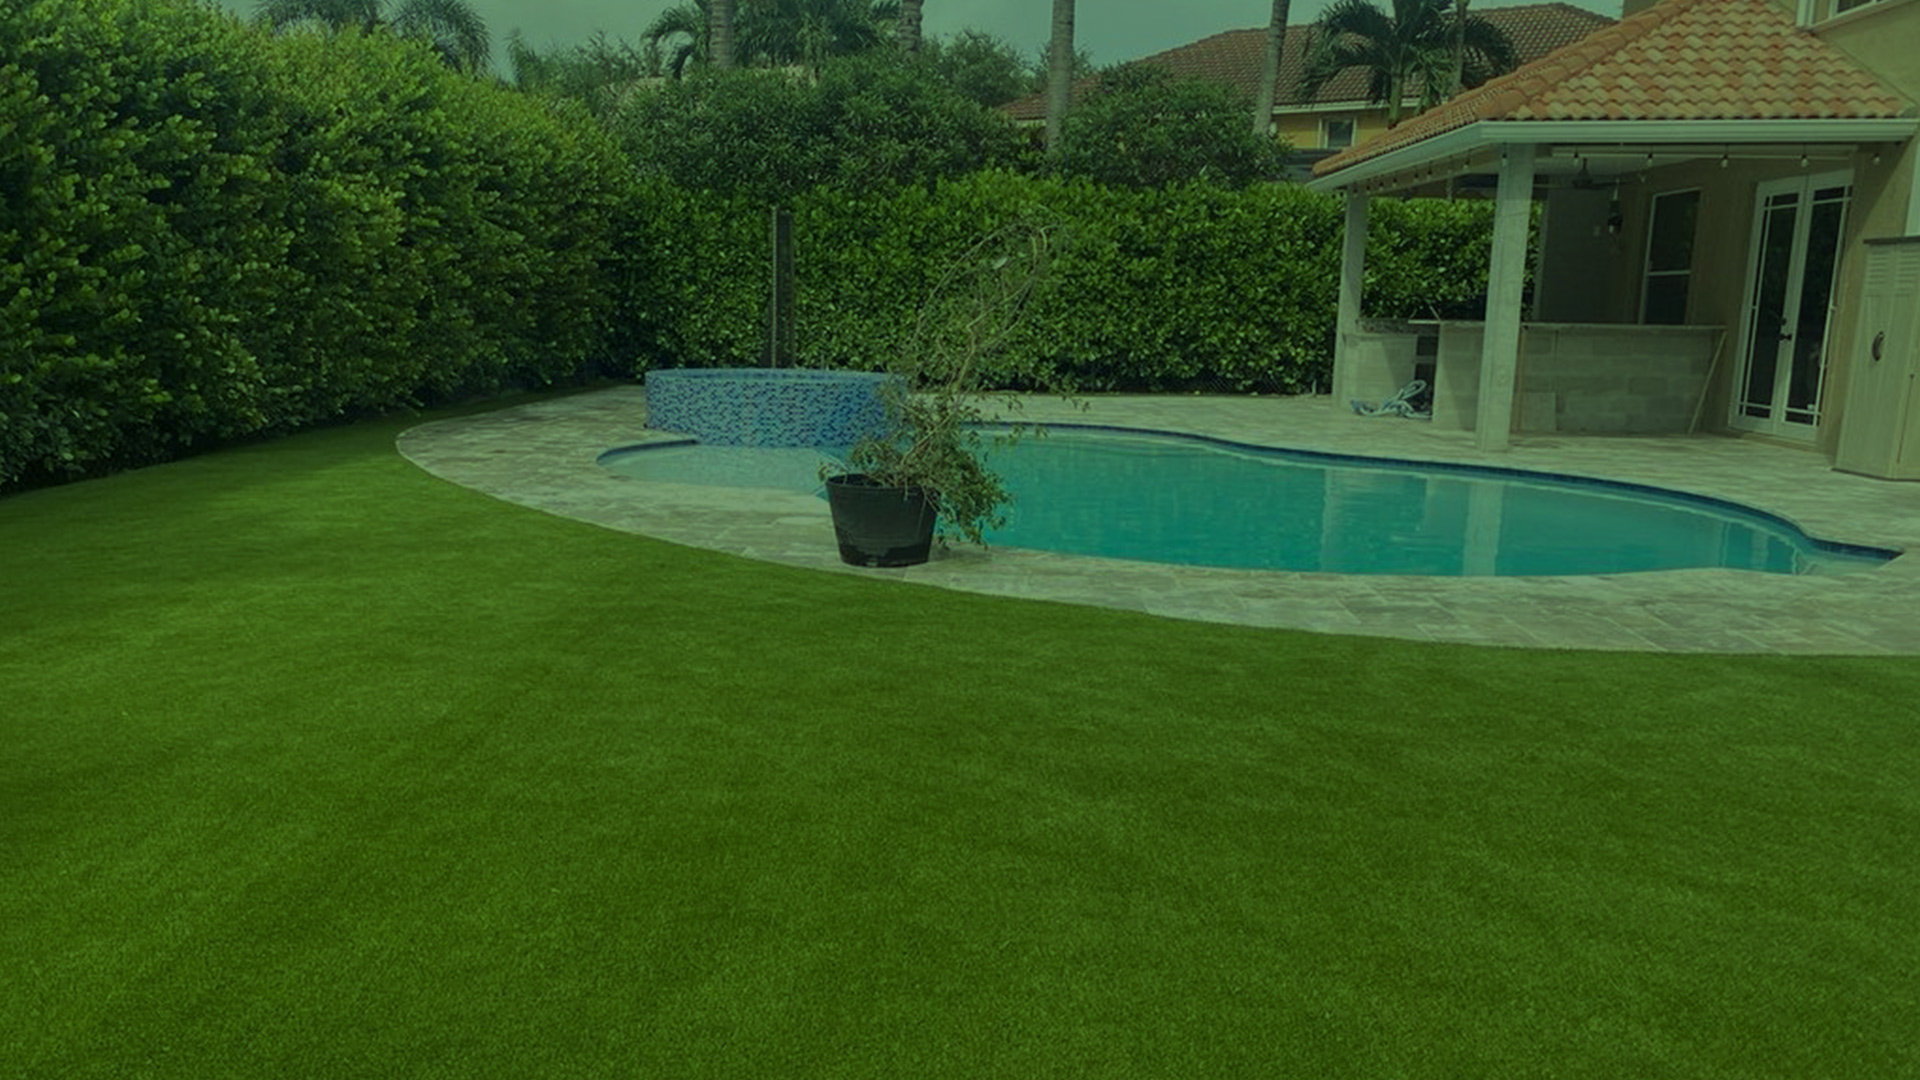 Jupiter Artificial Grass Installation, Synthetic Turf Installation and Putting Green Installation